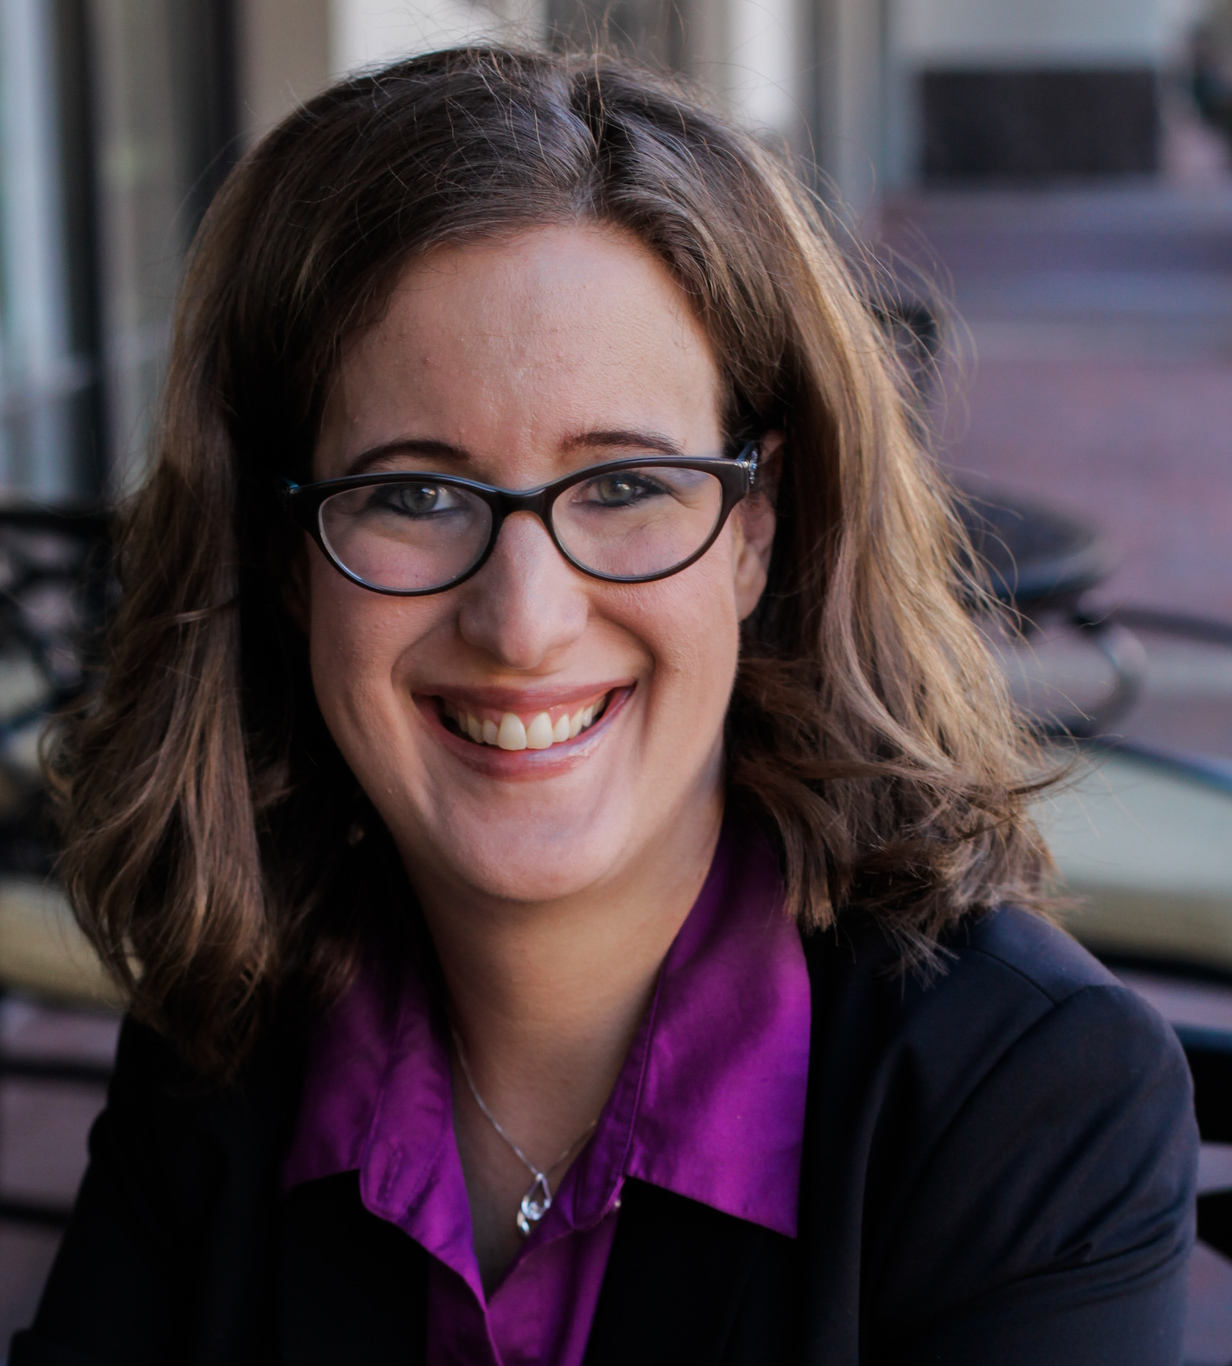 - Carissa Gay is a career and leadership coach who helps aspiring leaders clarify their vision and maximize their impact. She lives in San Antonio, Texas,and enjoys books, chocolates, and cross-cultural adventures. You can connect with her on FB at Courageous Leaders.